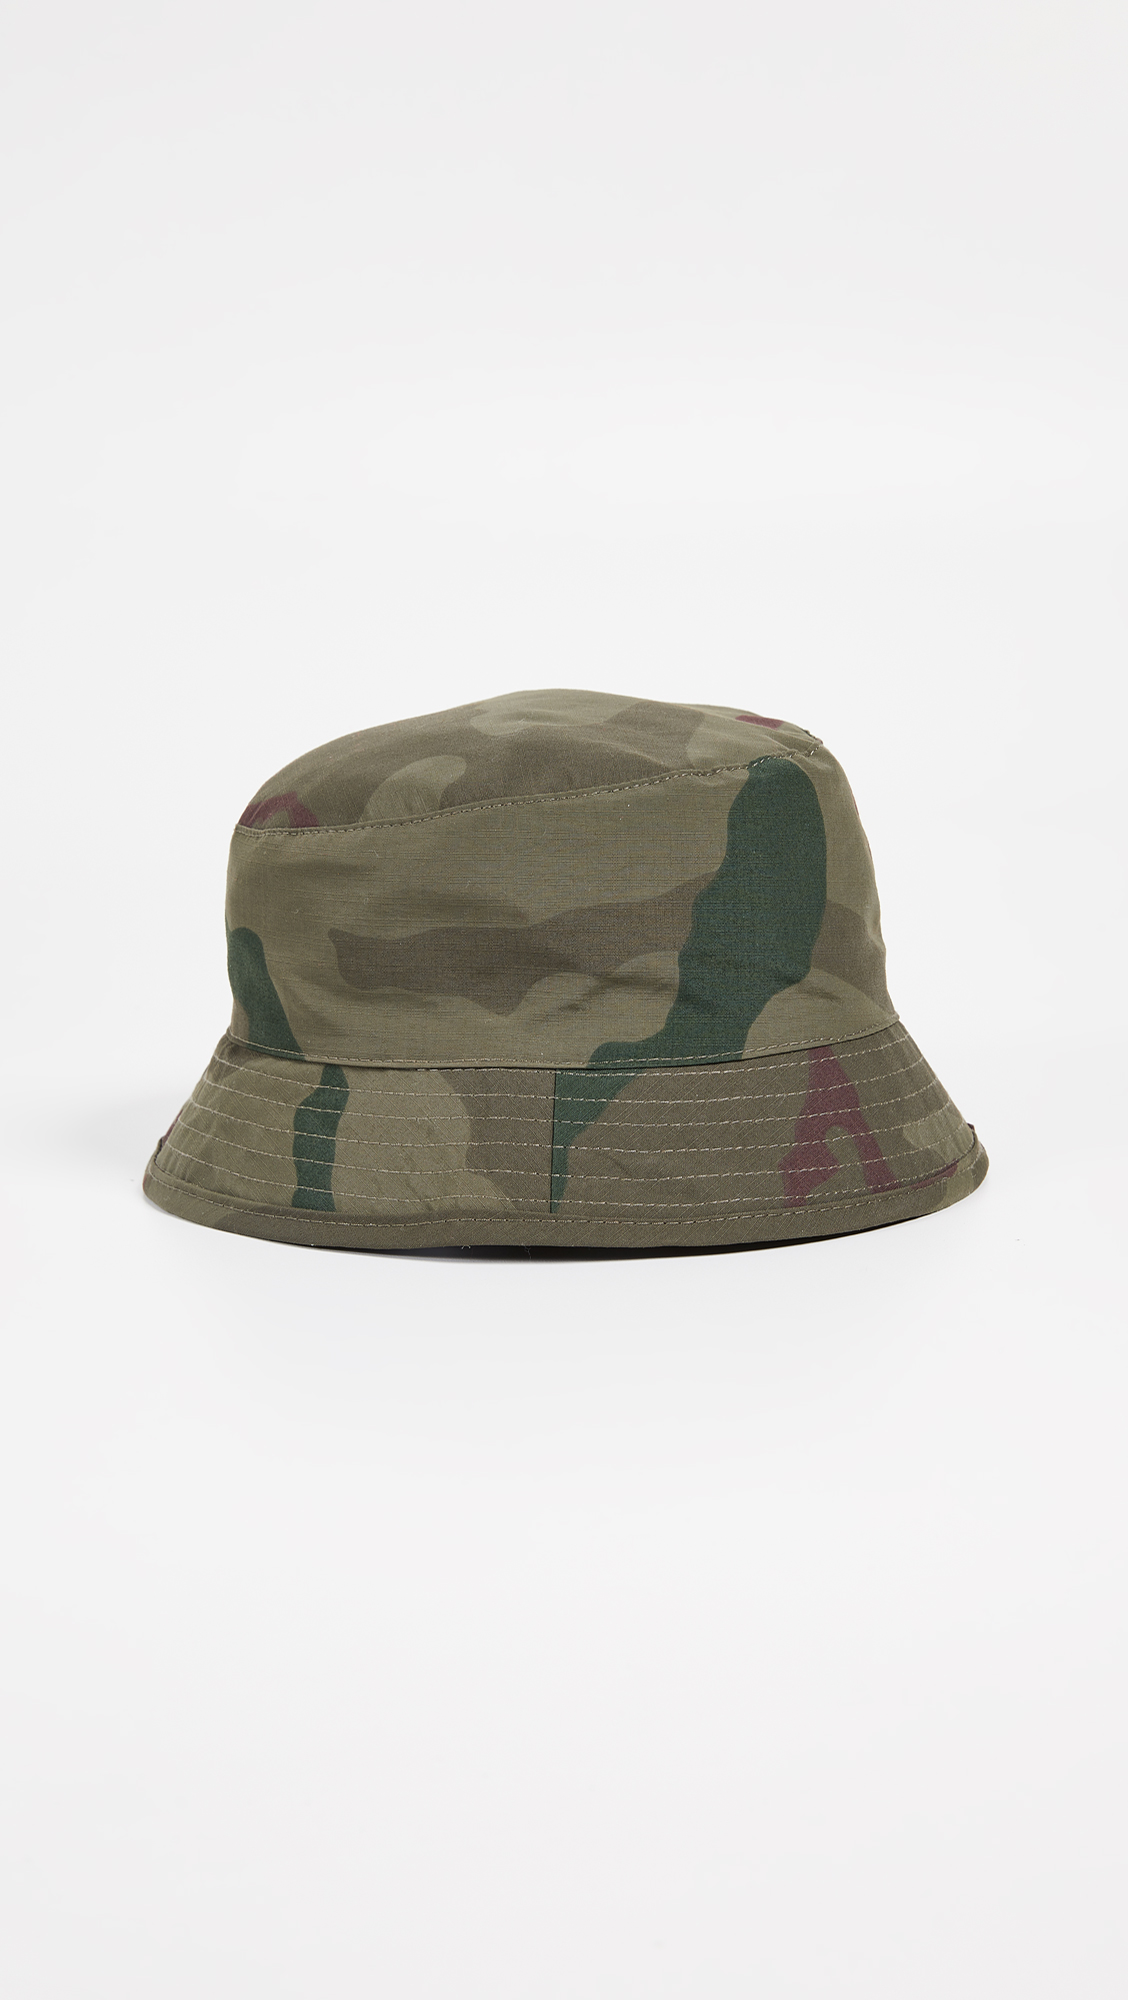 ee263b17 Fred Perry Camouflage Bush Hat | EAST DANE